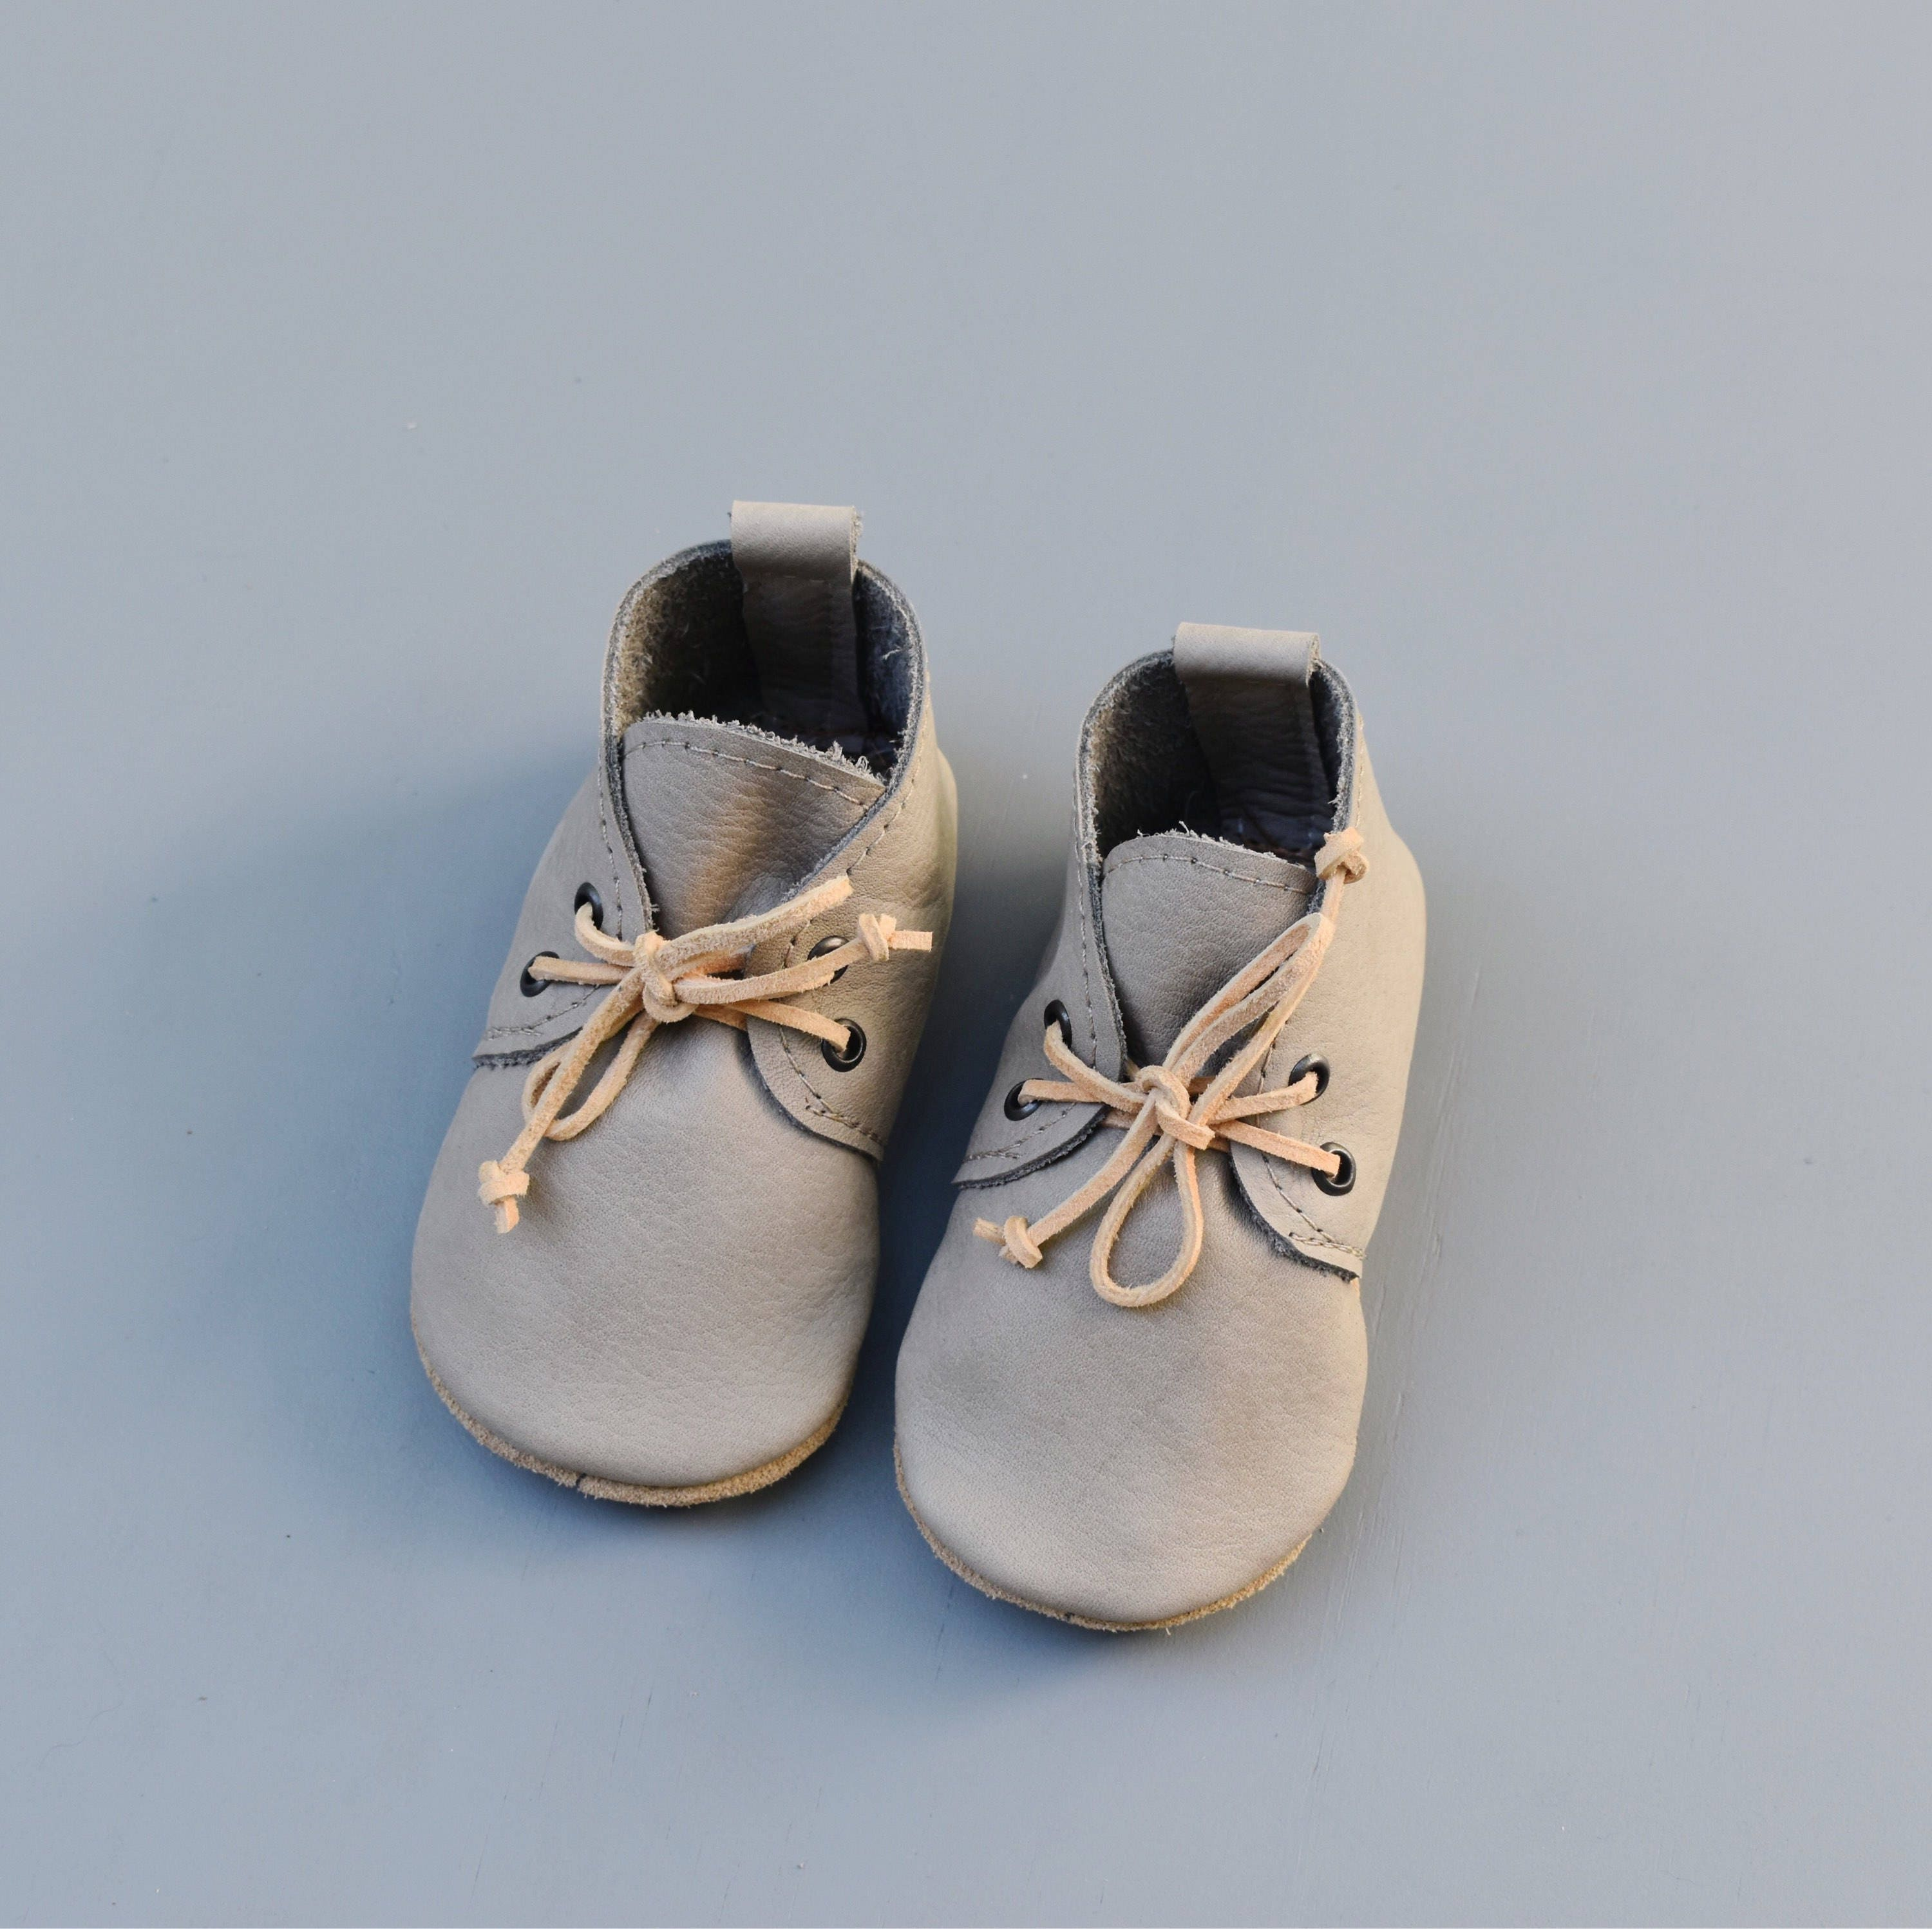 5 5 size 5 6 READY TO SHIP oxfords baby moccasins moccs soft